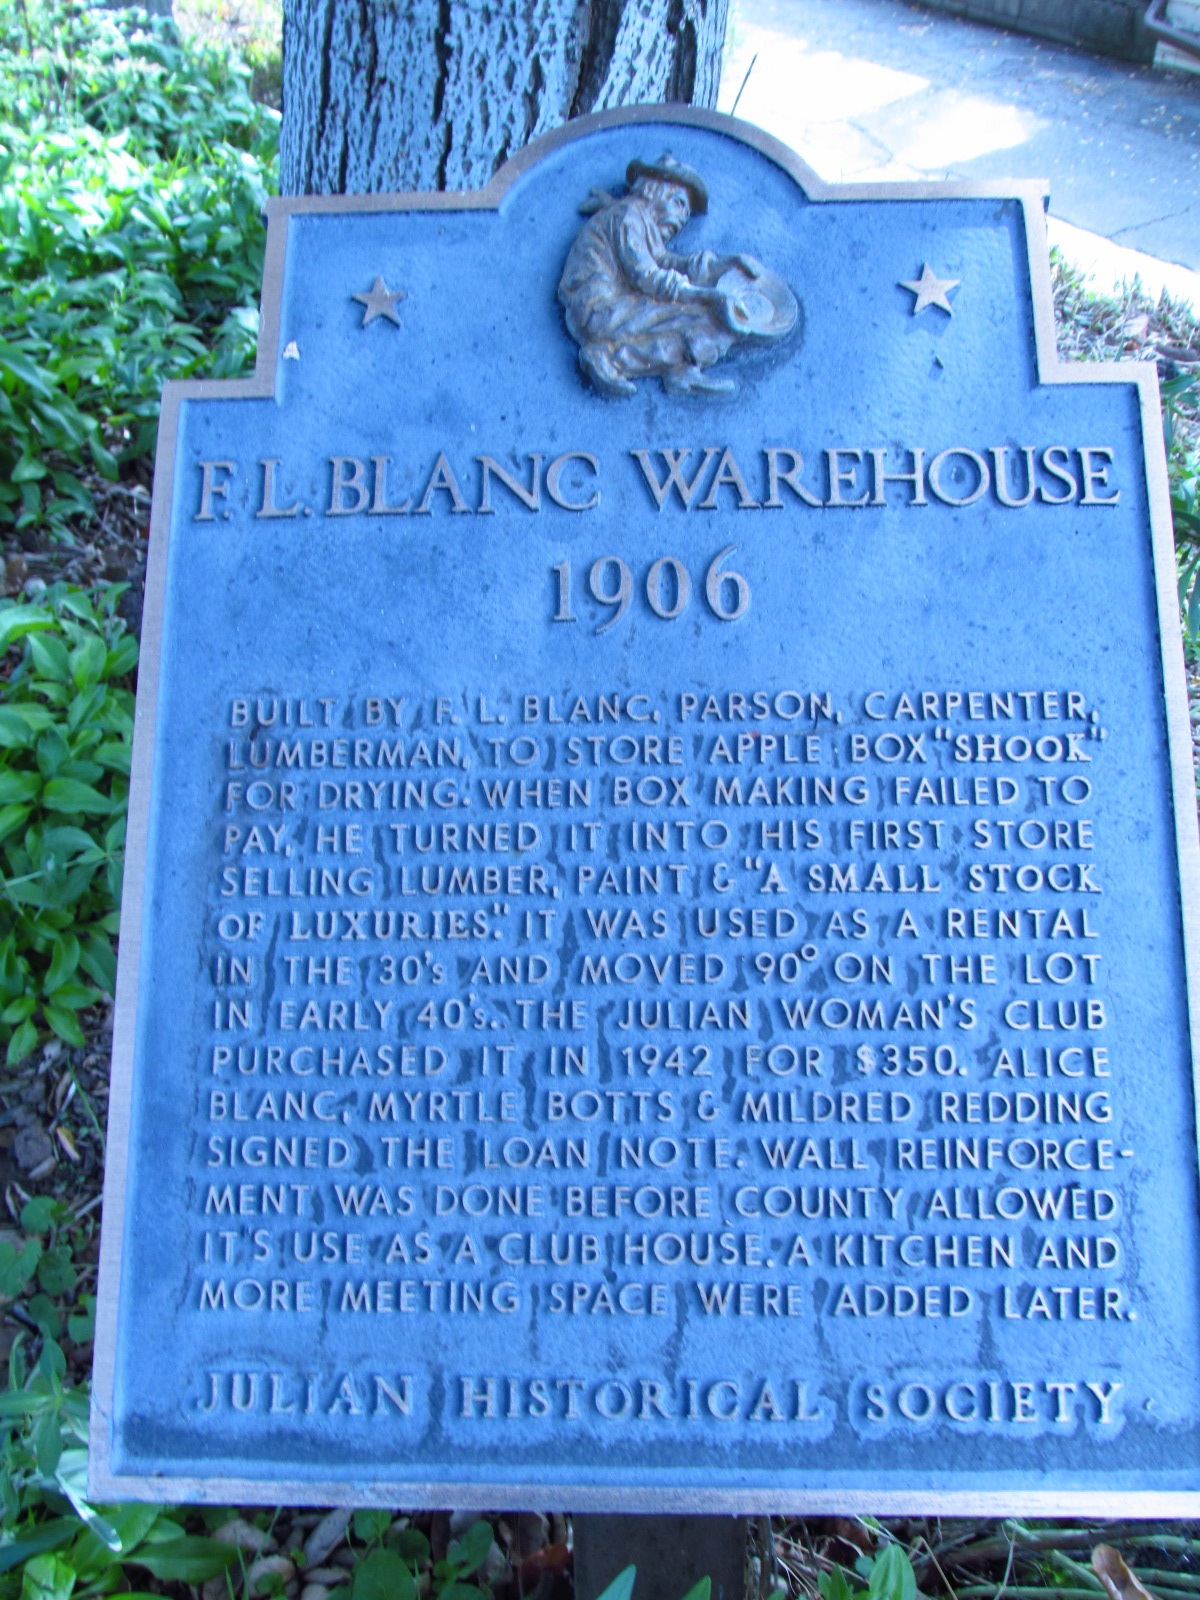 Julian Historical Society F.L. Blanc Warehouse Sign